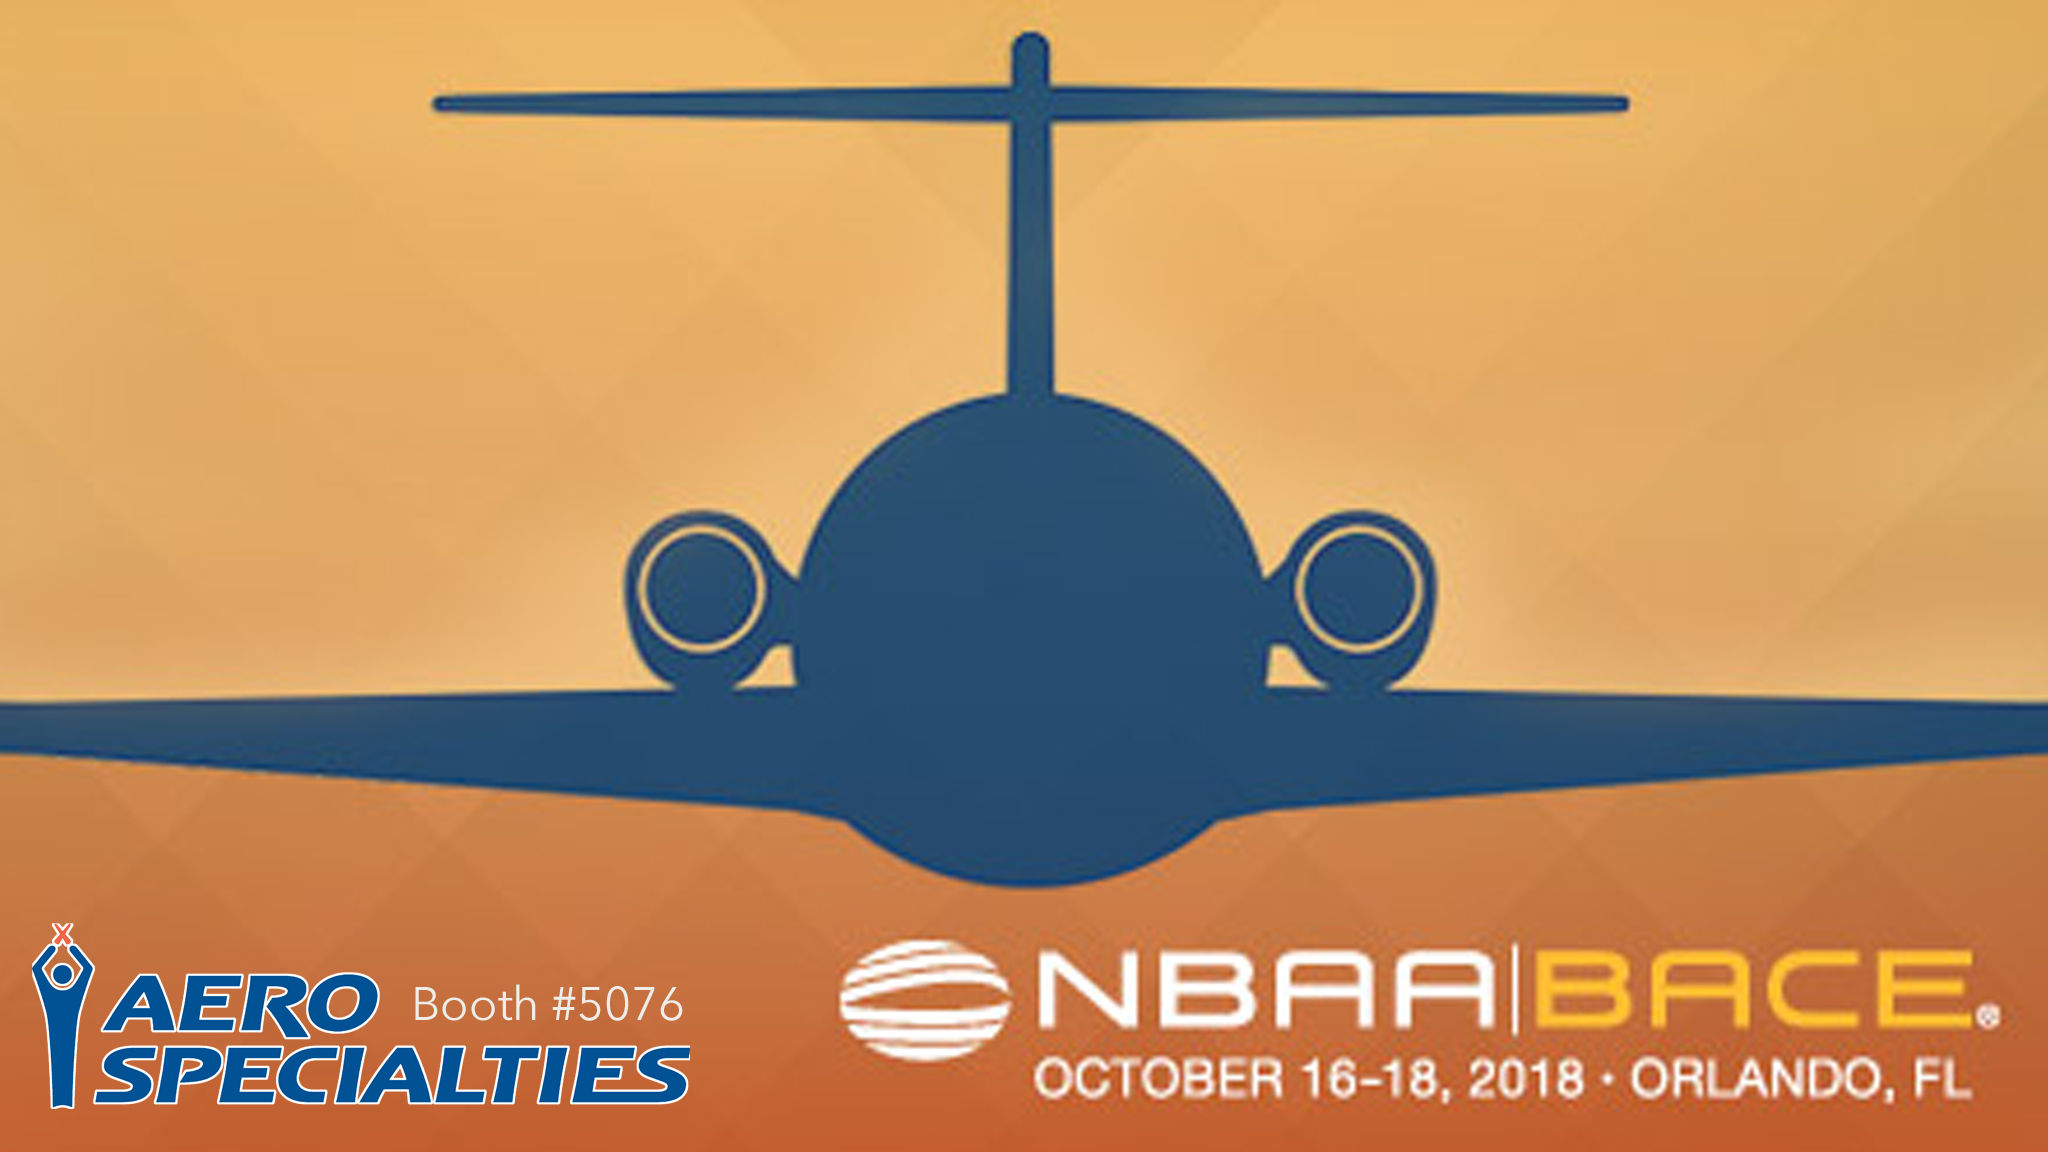 NBAA BACE picture